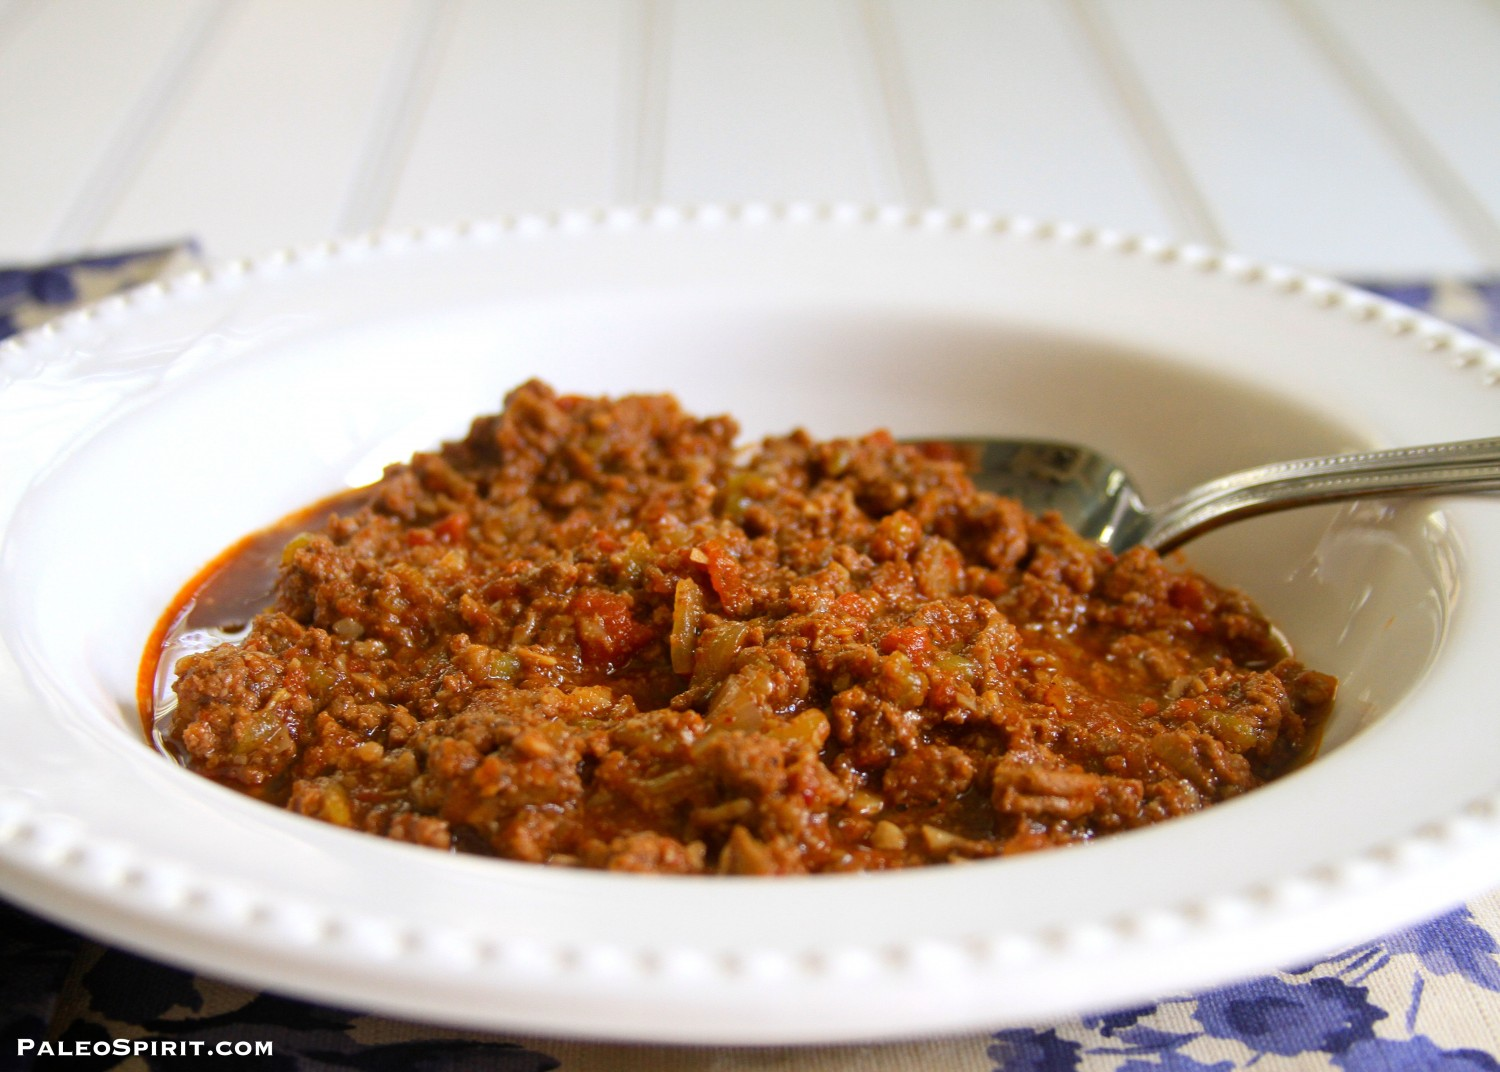 Paleo Chipotle Chili